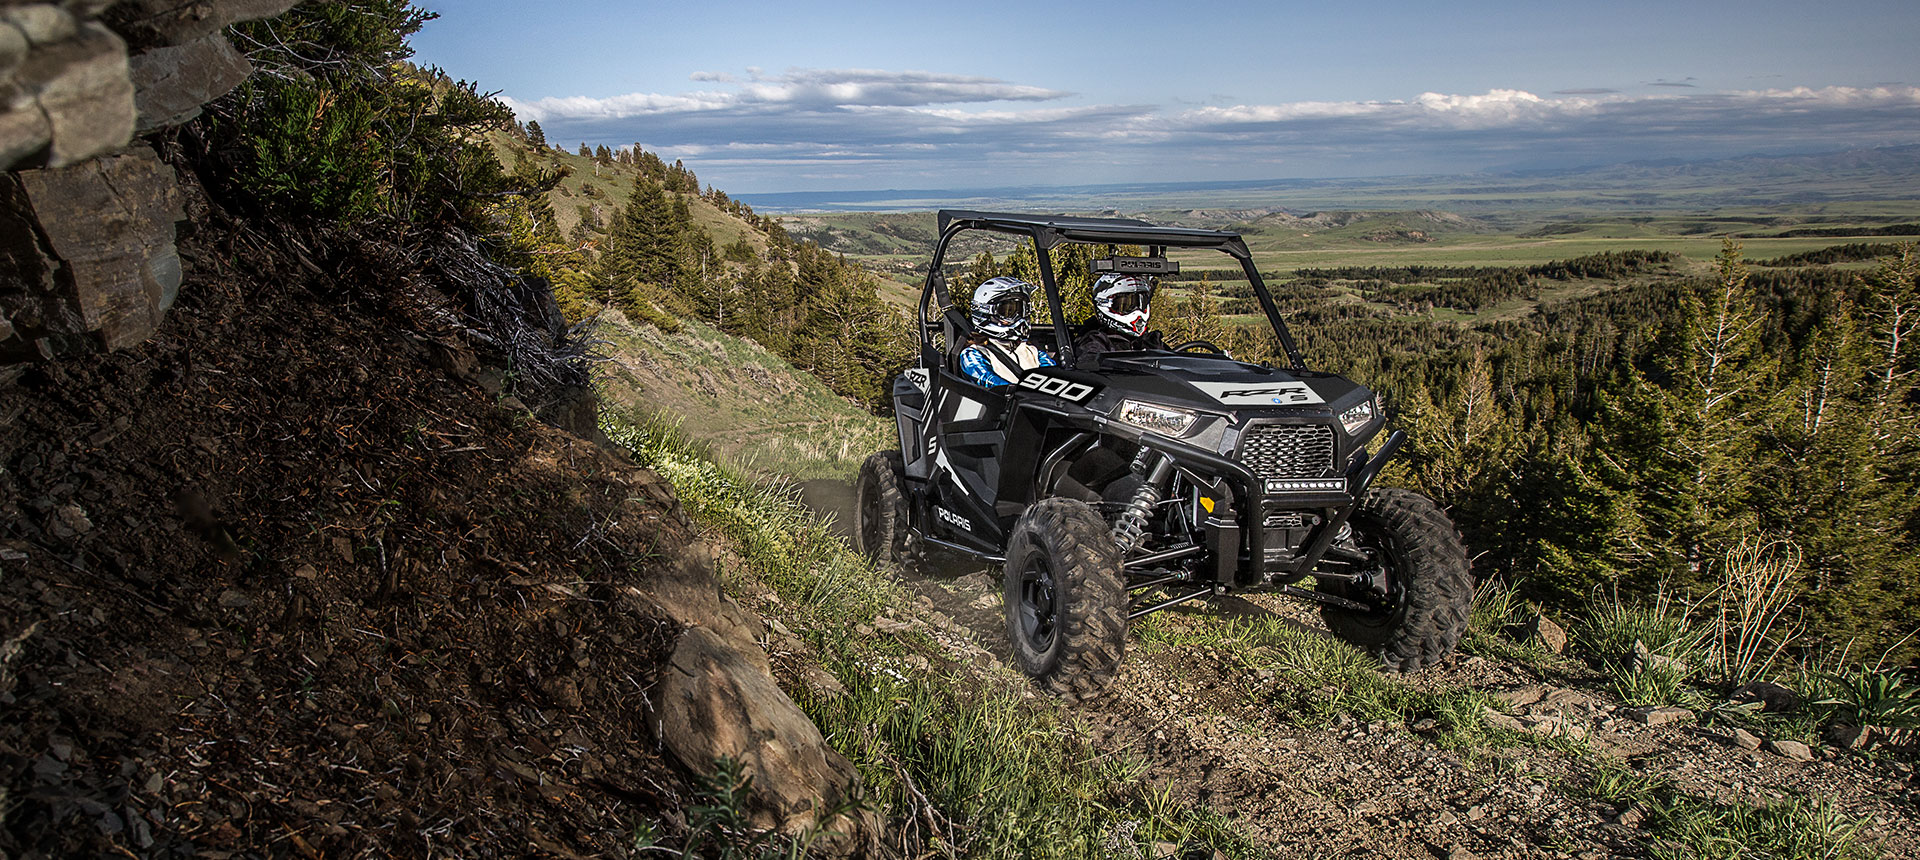 2019 Polaris RZR S 900 EPS in Elma, New York - Photo 4